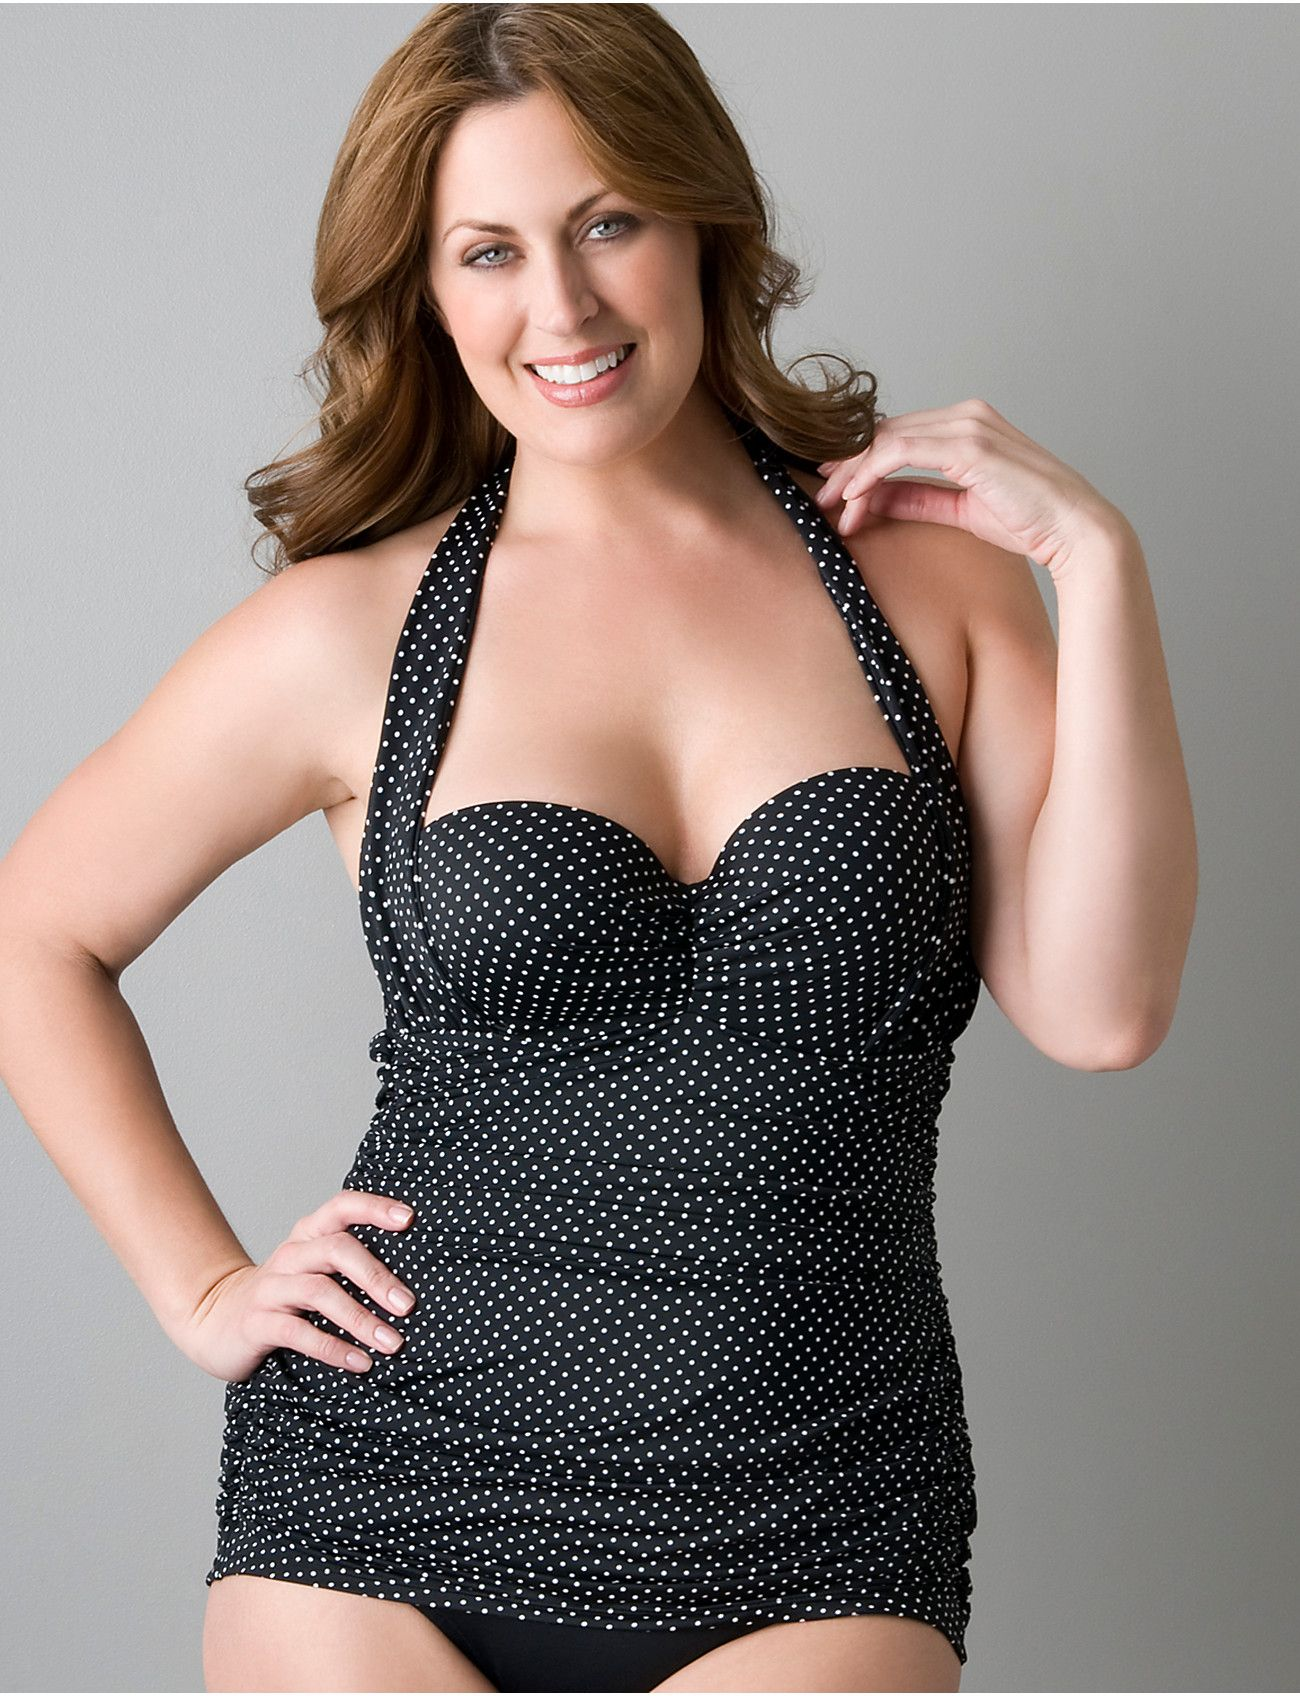 2fc4113f061b5 Plus size Retro shirred swimsuit with underwire | Lane Bryant (sold out,  but maybe i can find something similar??)